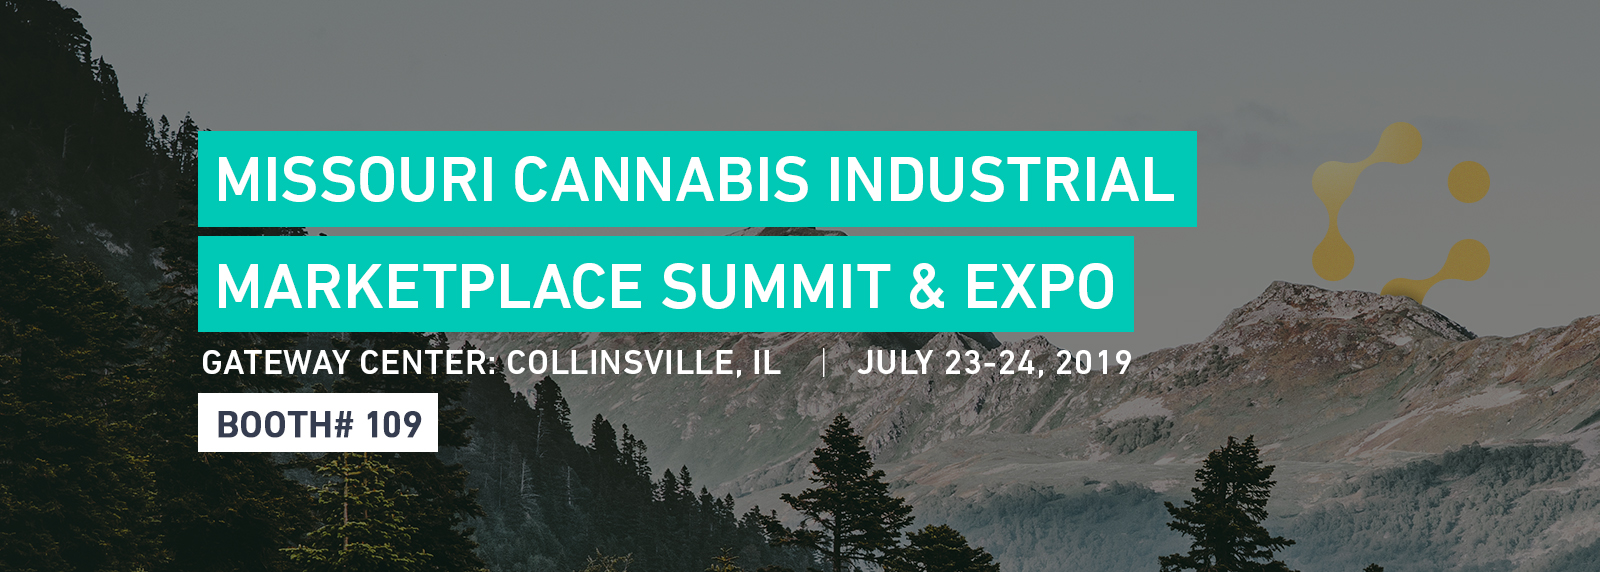 MO-Cannabis-Expo-2019-Landing-Page